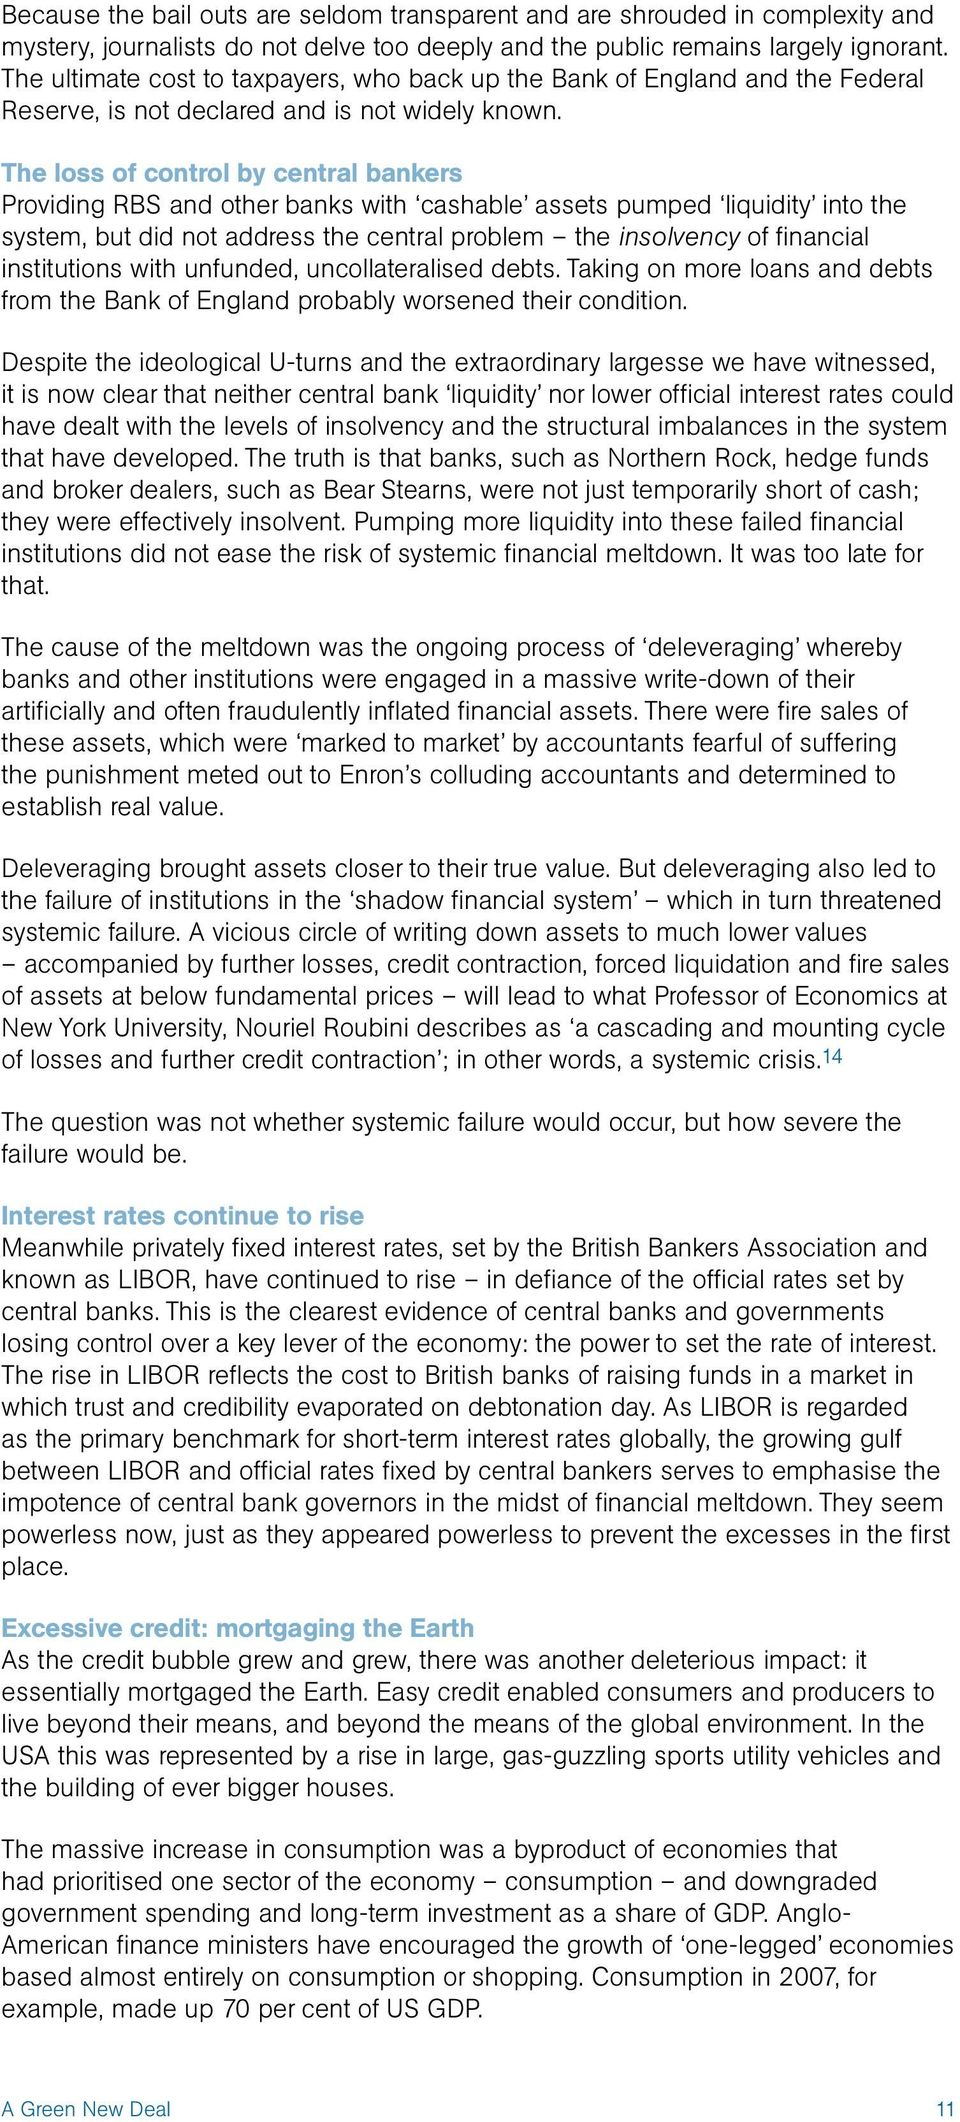 The loss of control by central bankers Providing RBS and other banks with cashable assets pumped liquidity into the system, but did not address the central problem the insolvency of financial